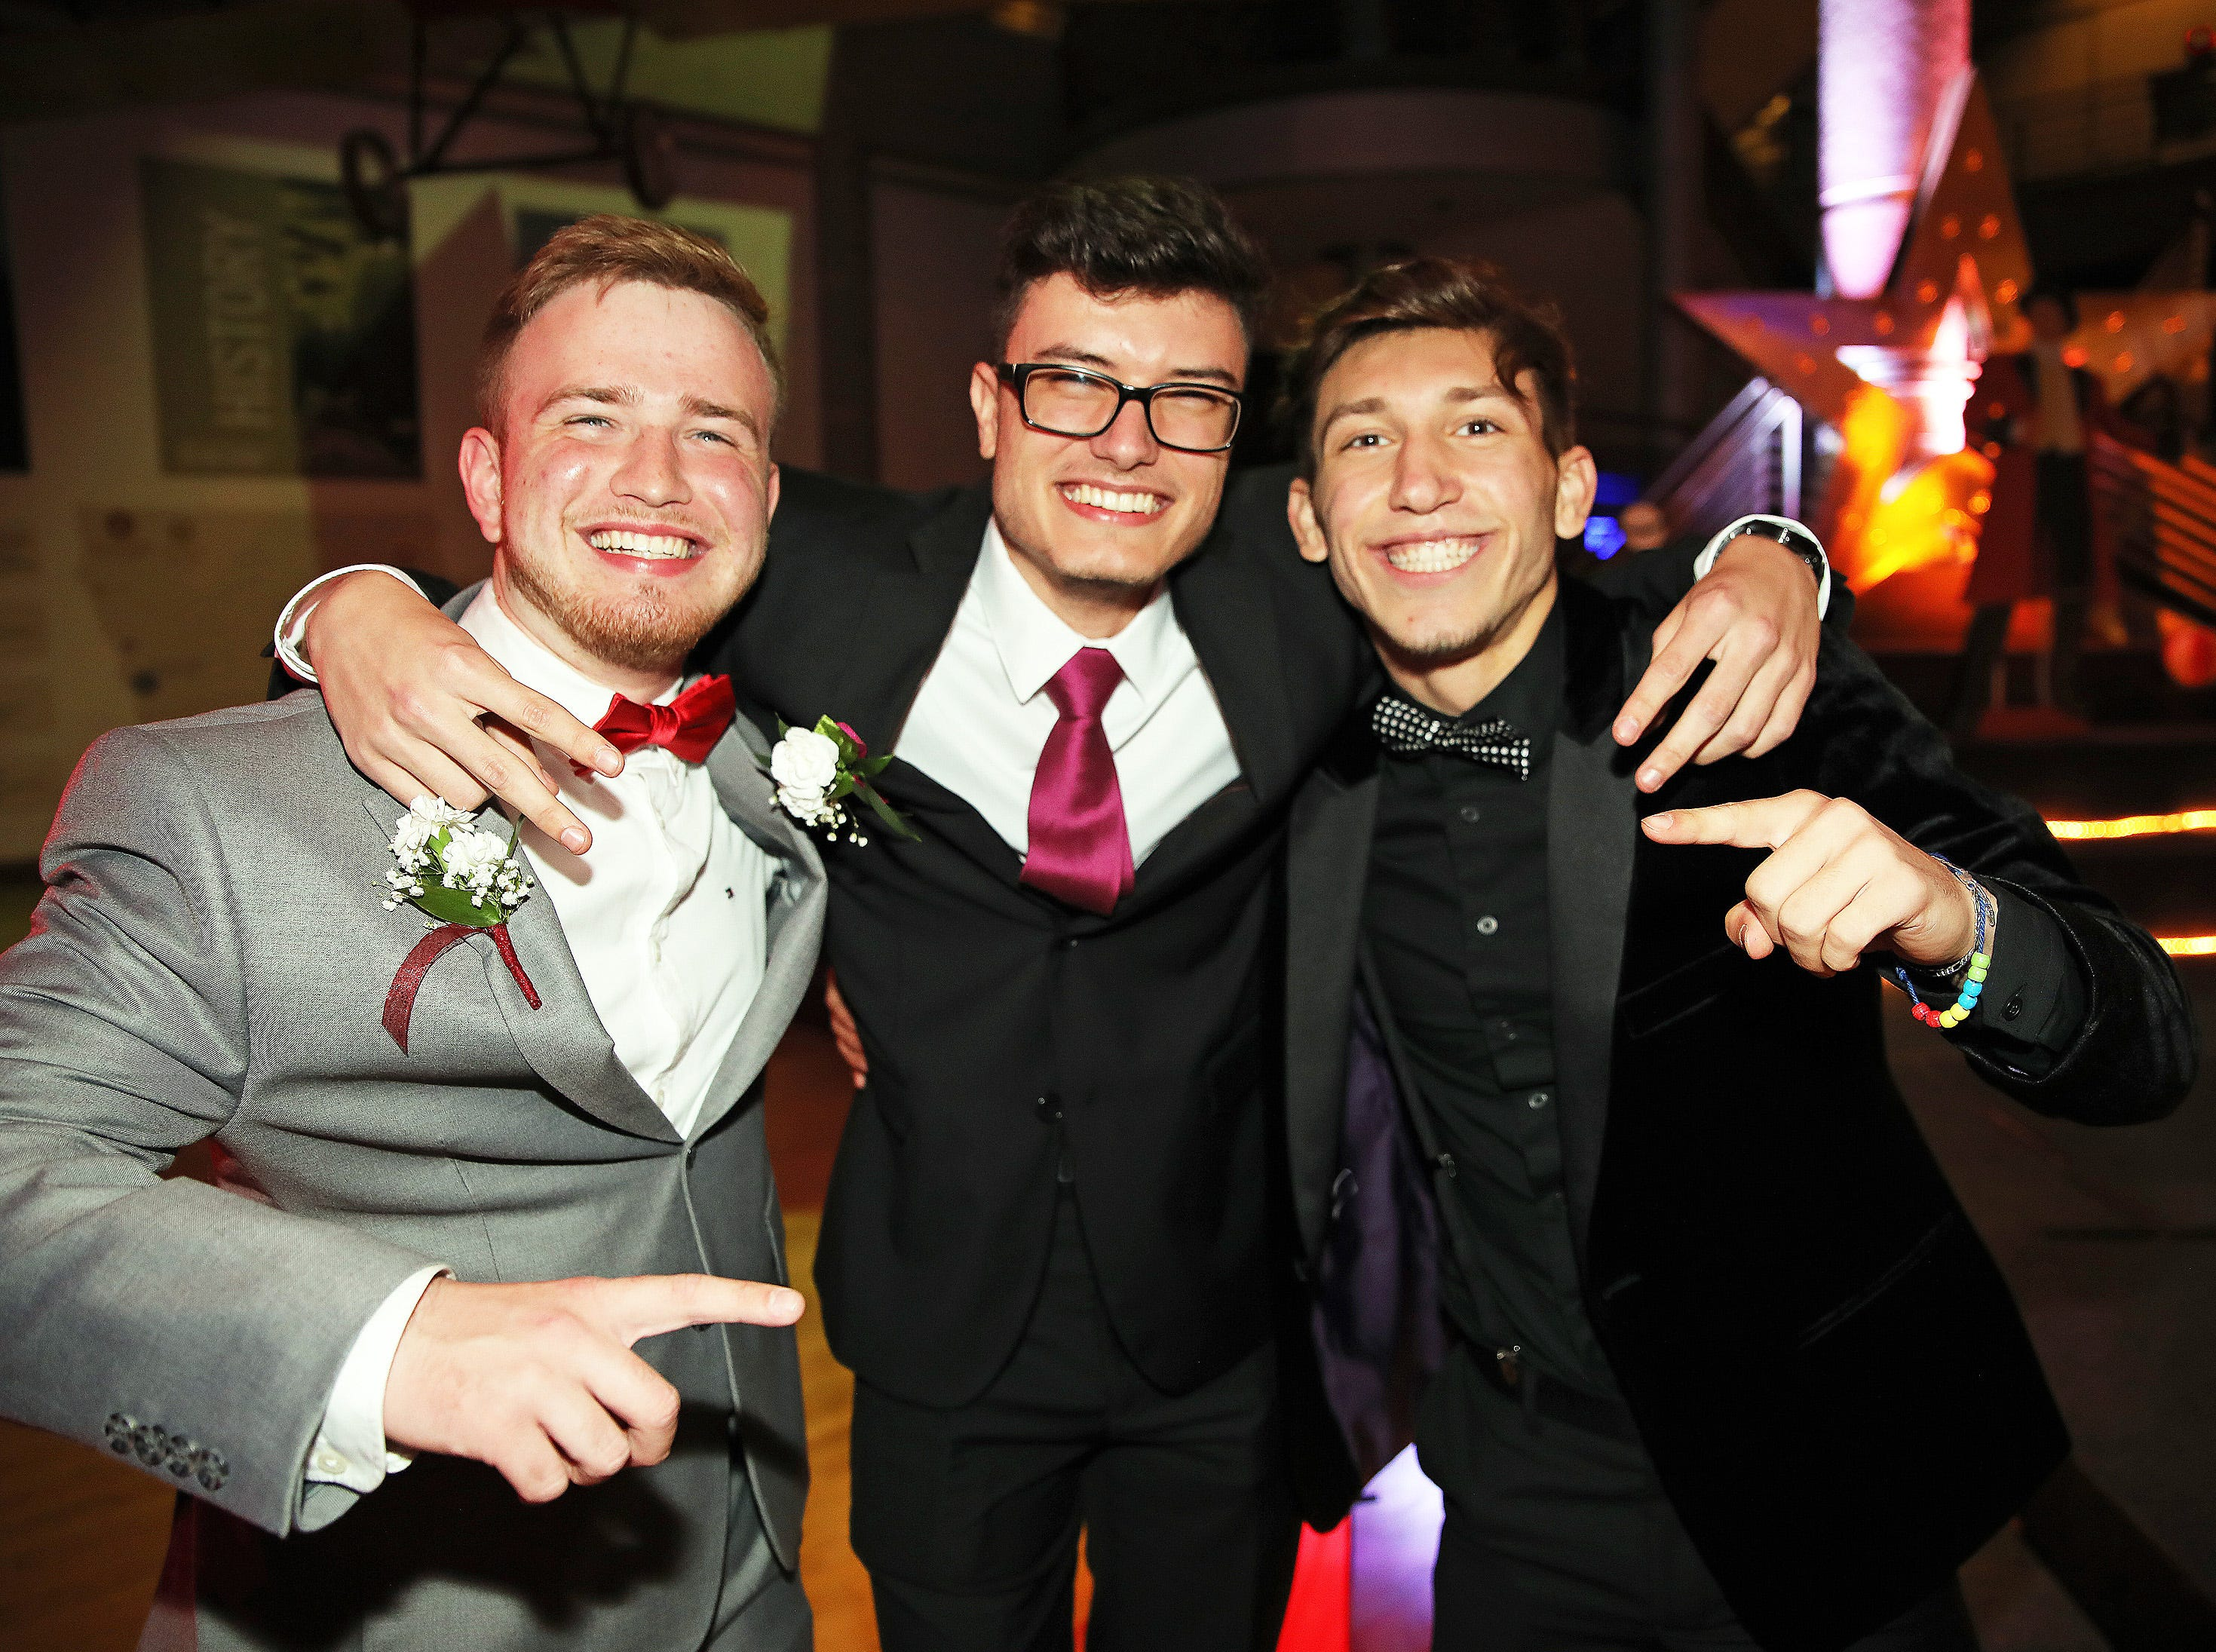 (left to right) Seniors Armin Hasancevic, Semir Omerovic, Alan Imamovic attend the circus-themed Urbandale High School Junior/Senior Prom Spectacular at the State Historical Building in Des Moines on Saturday, April 11, 2019. The post-prom event is held at school right after the dance from 11 p.m. to 4:30 a.m. with food, prizes, a hypnotist, inflatables, and casino games.